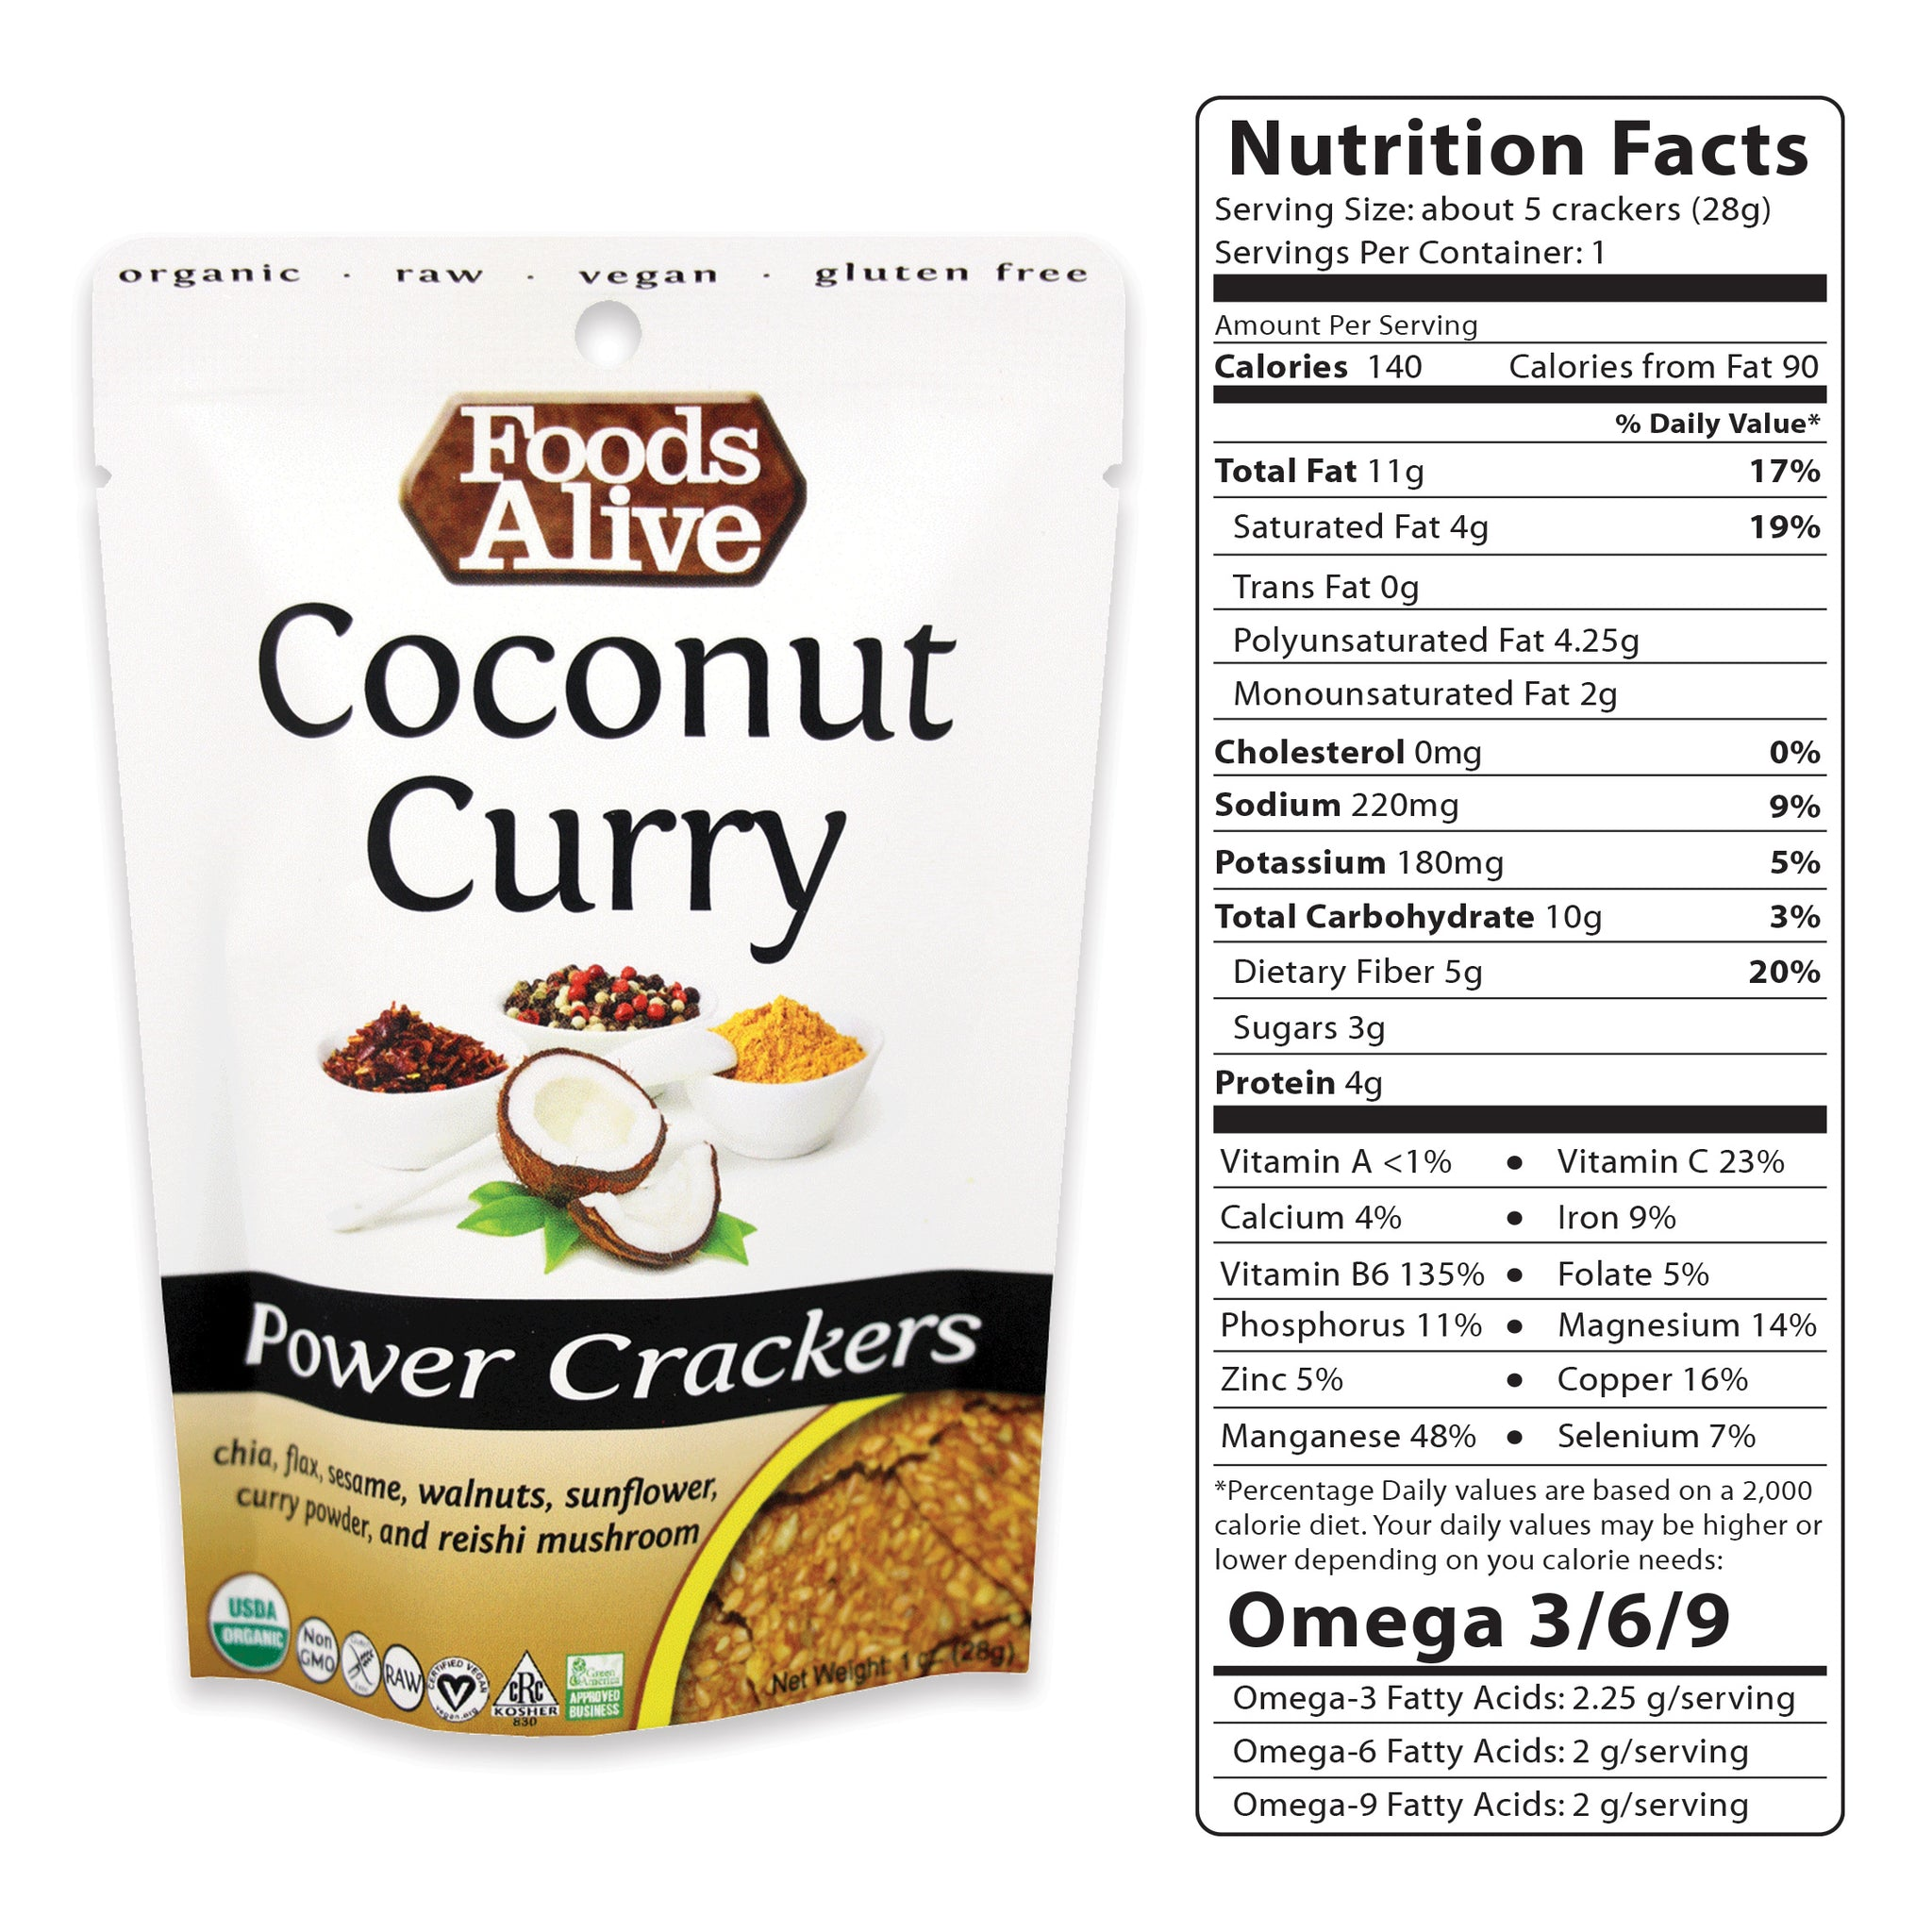 1oz Coconut Curry Power Crackers - Organic, Gluten Free, Non-GMO, Raw, Vegan, Kosher - Foods Alive